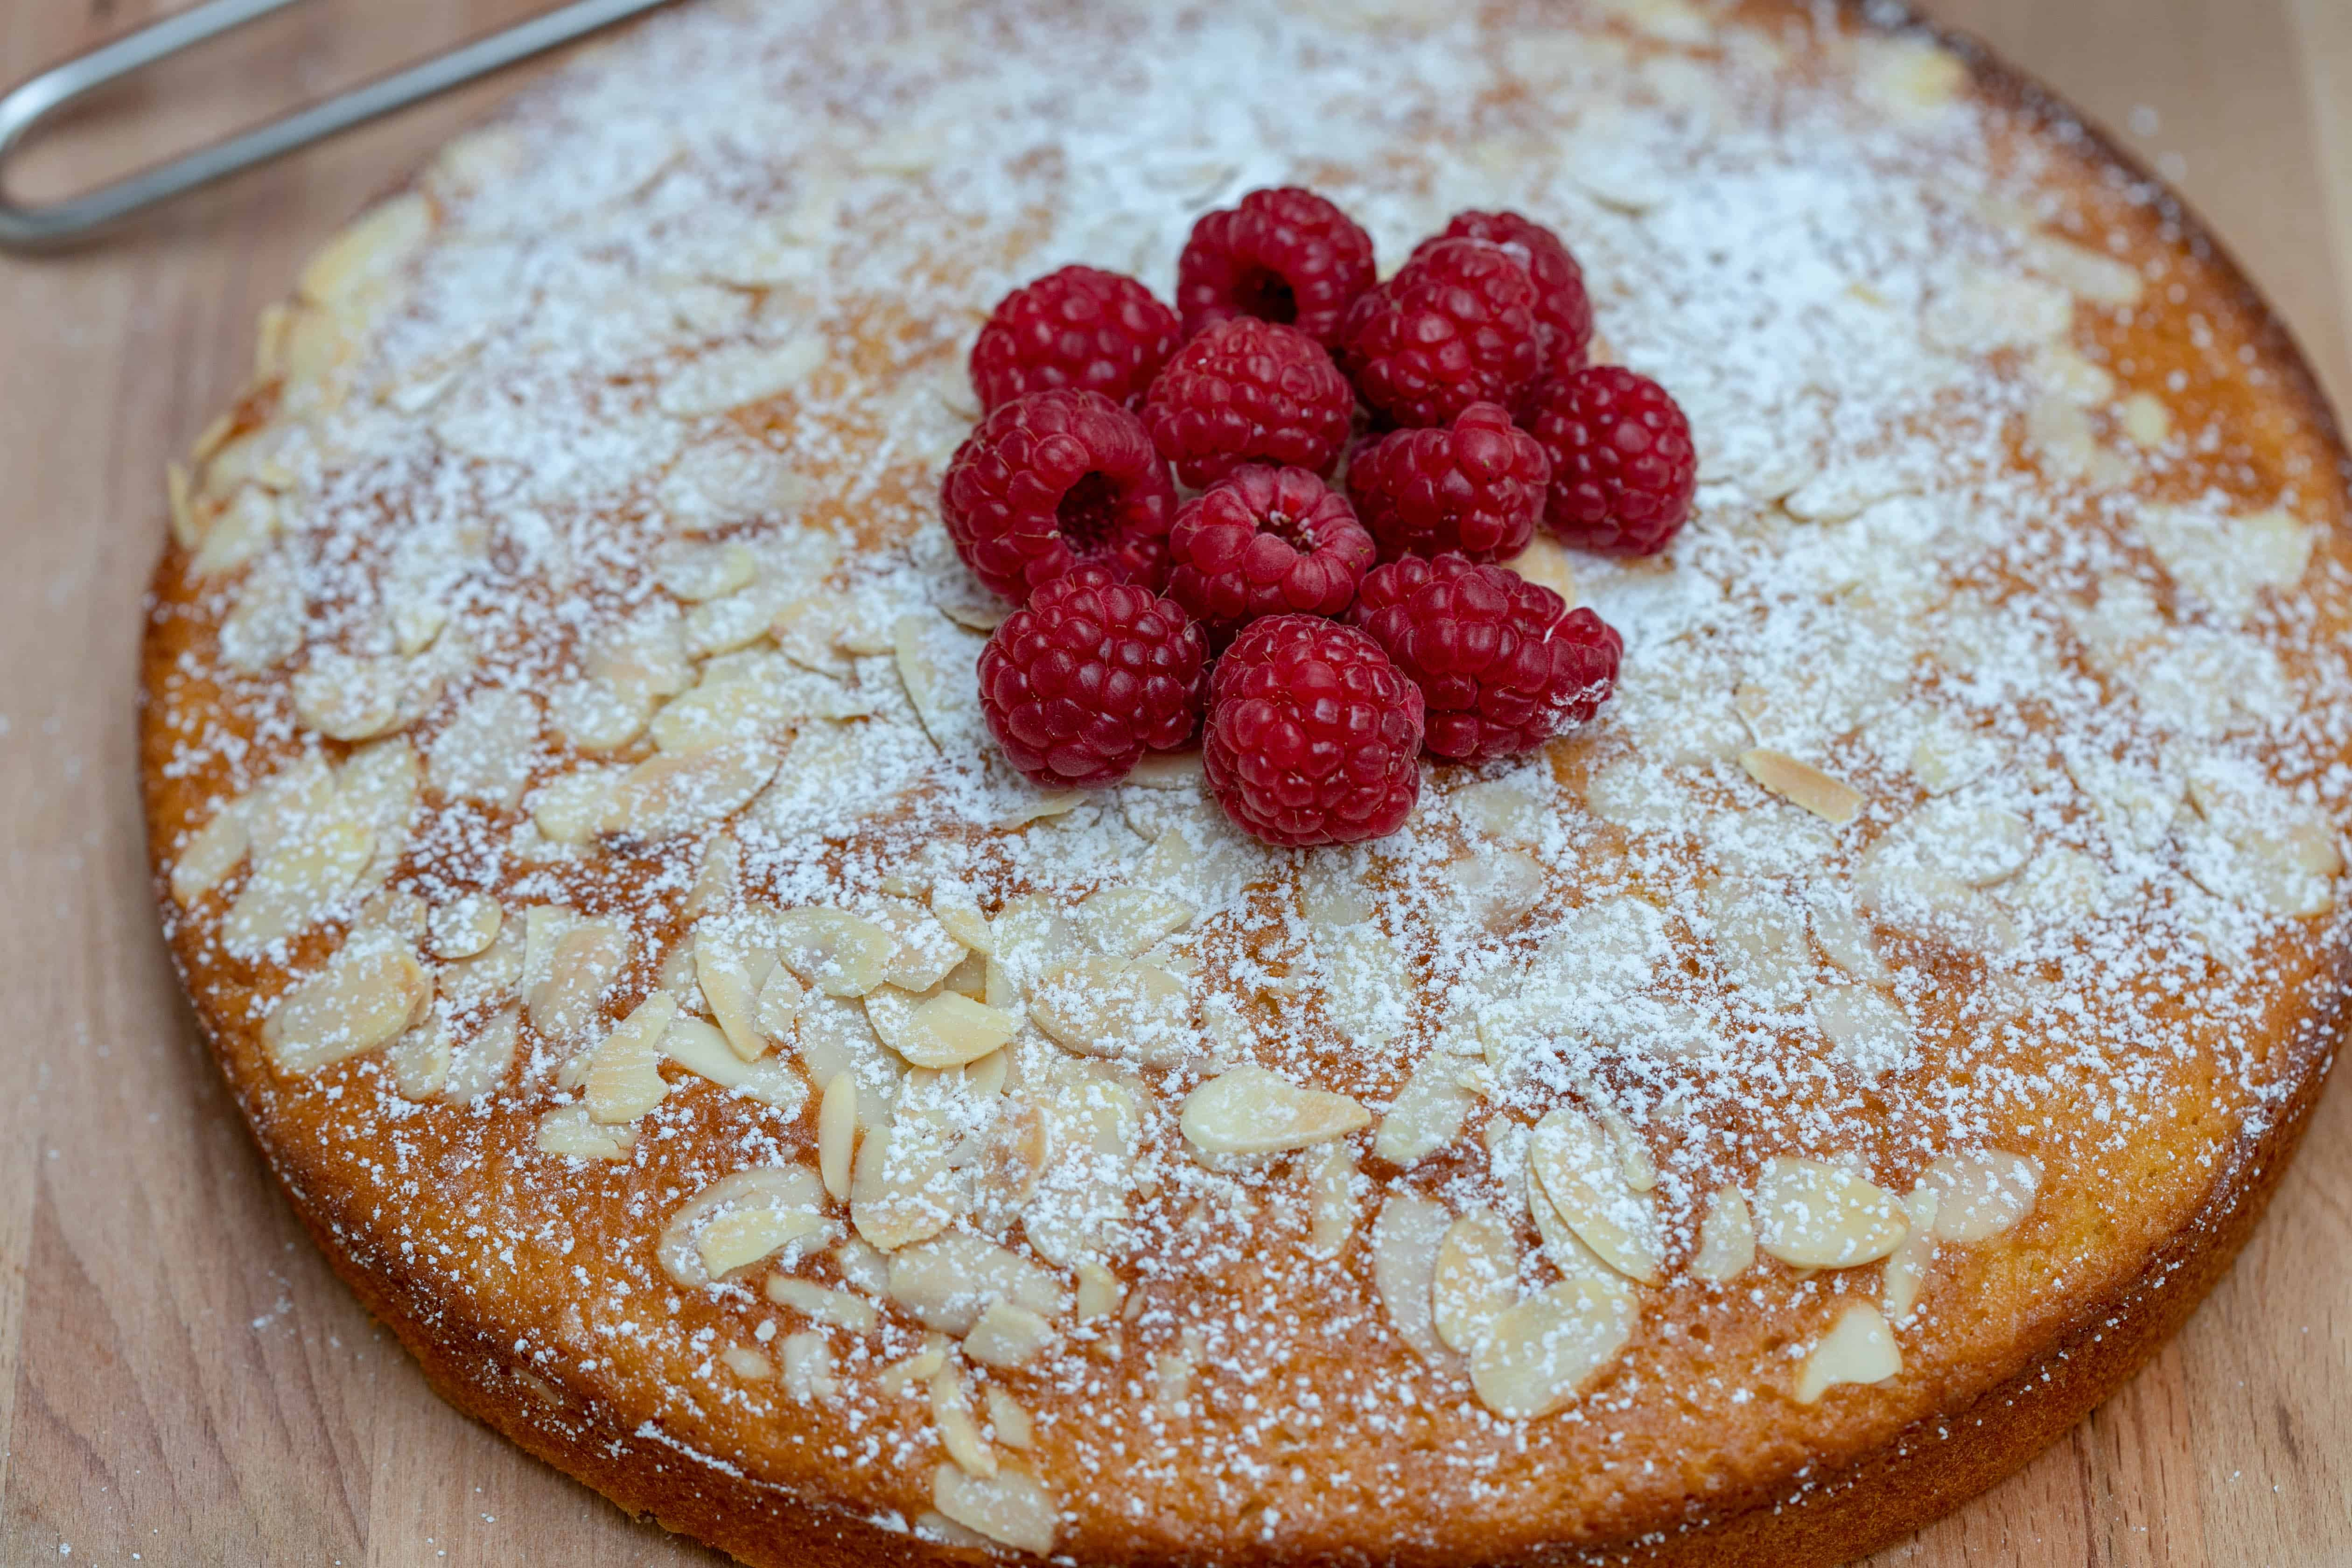 French yogurt cake with almonds dusted with powdered sugar and topped with raspberries